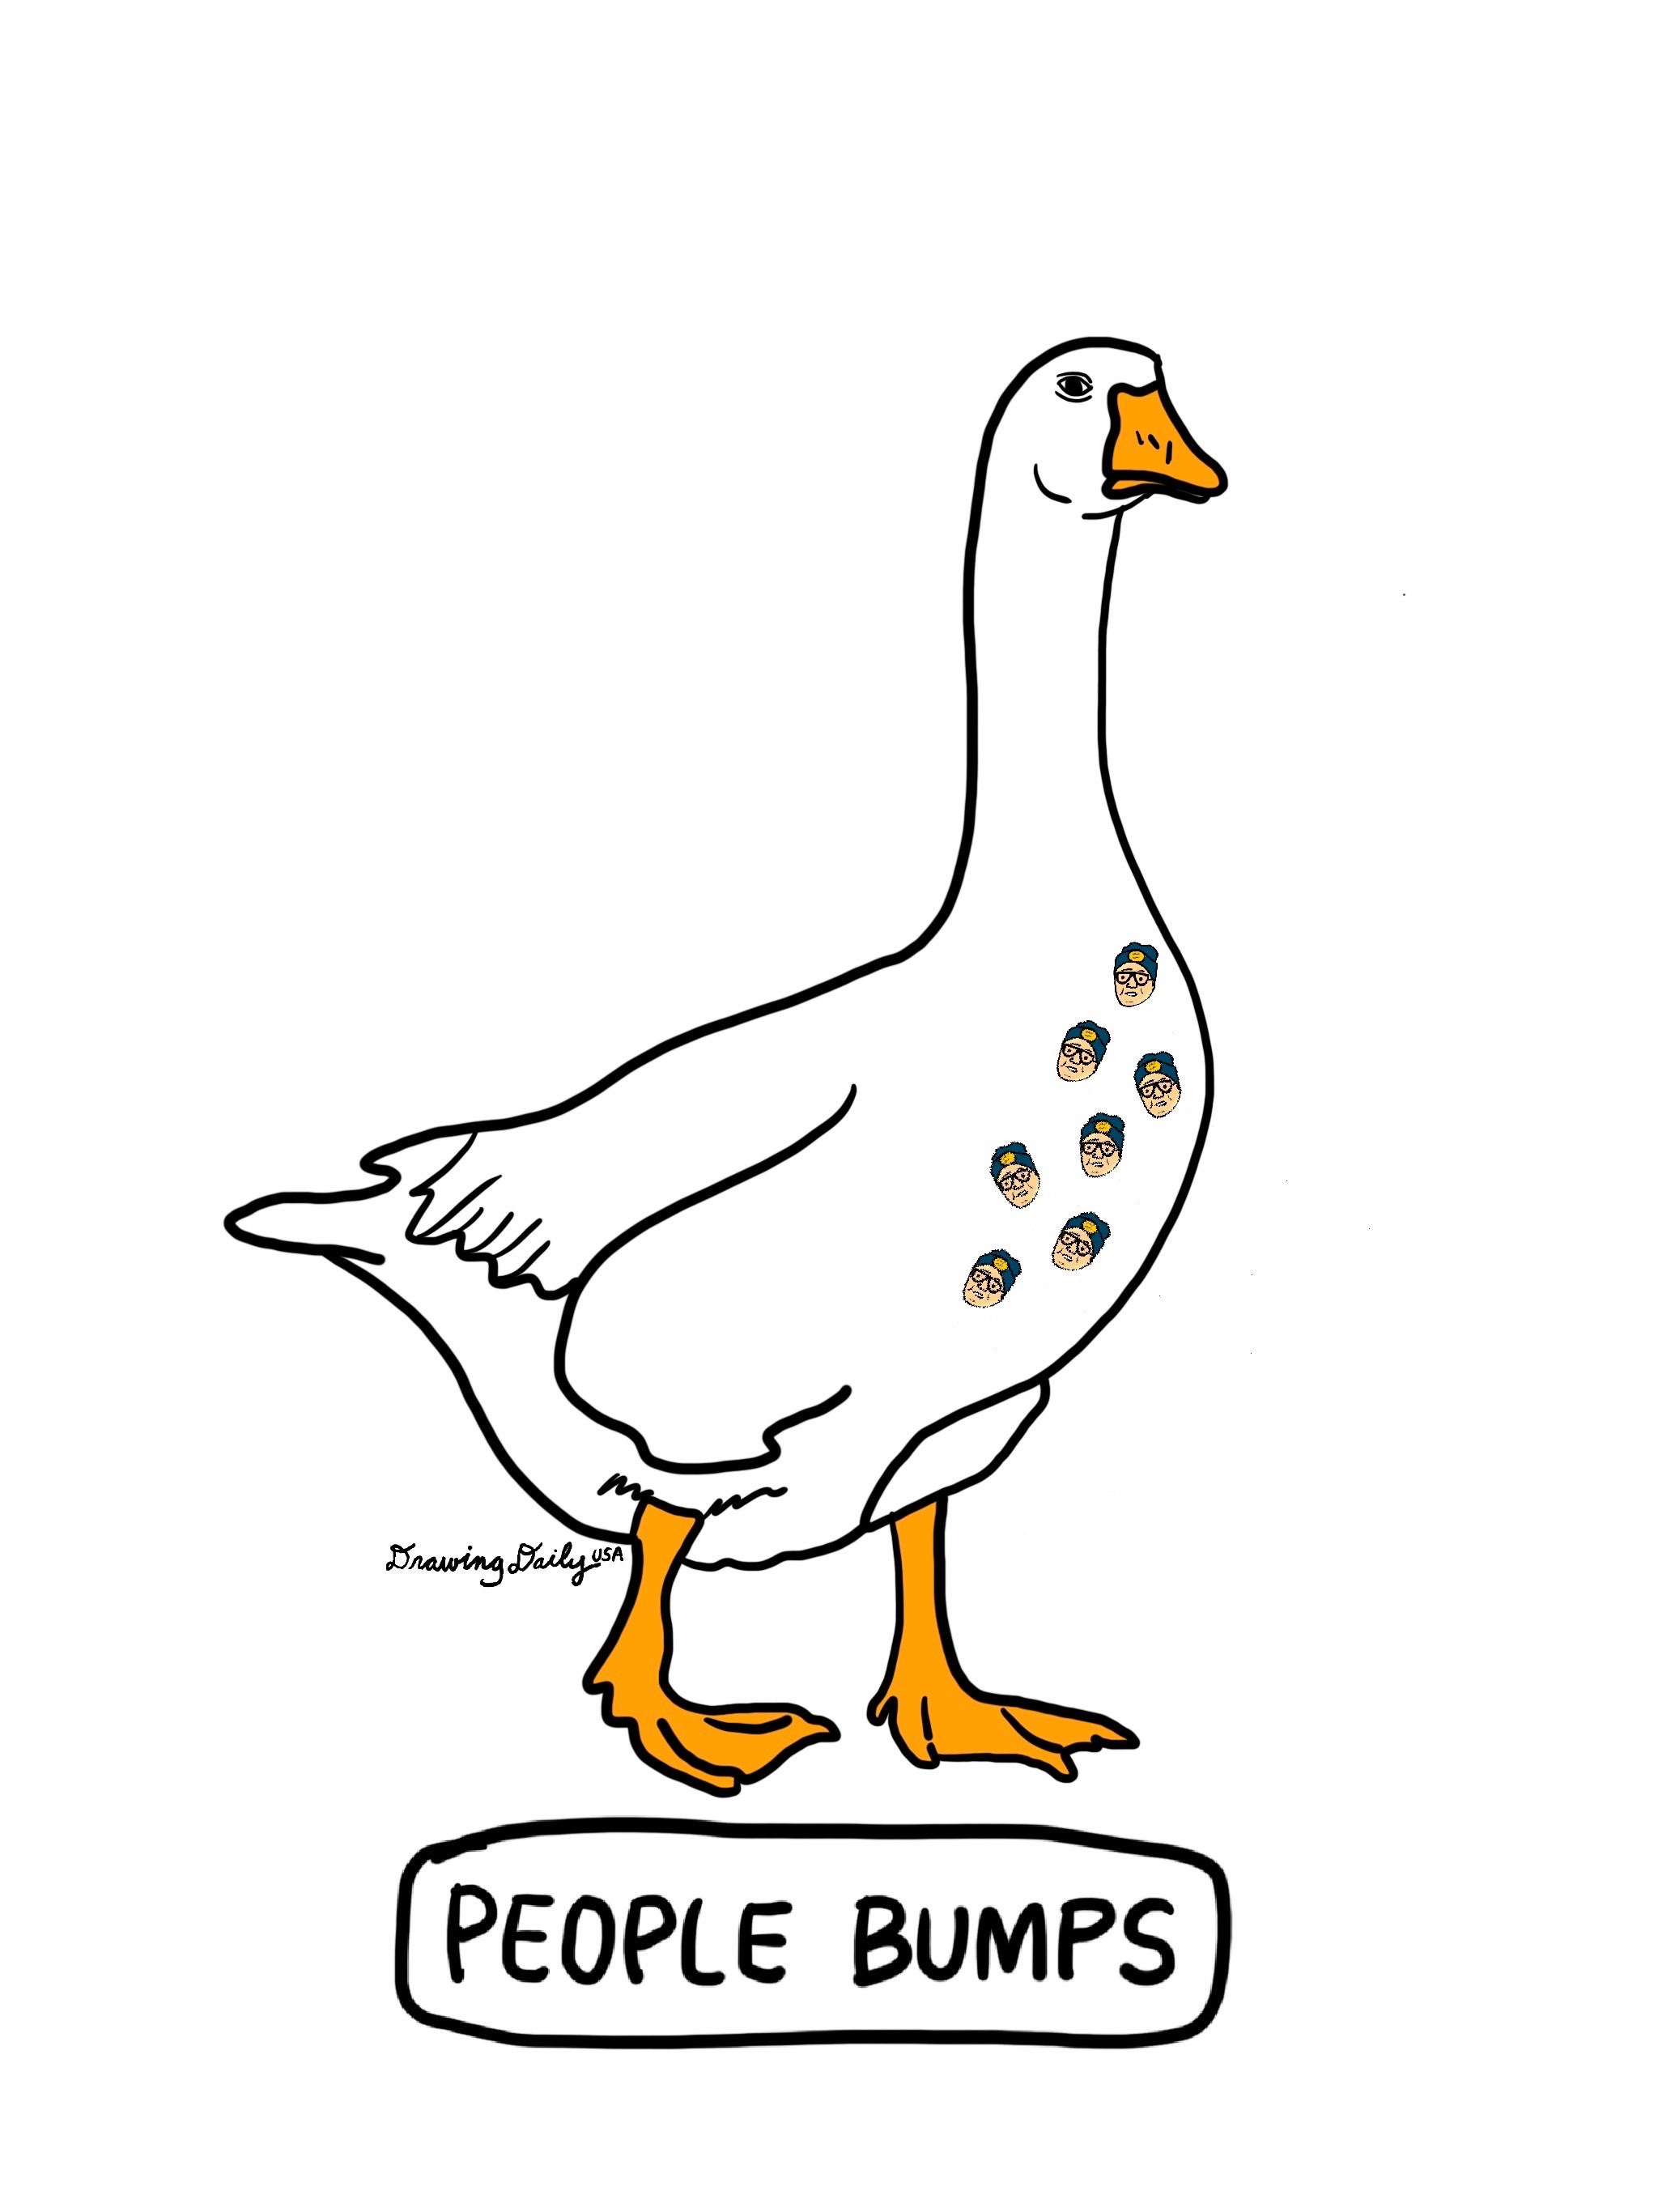 Do Geese Get People Bumps?